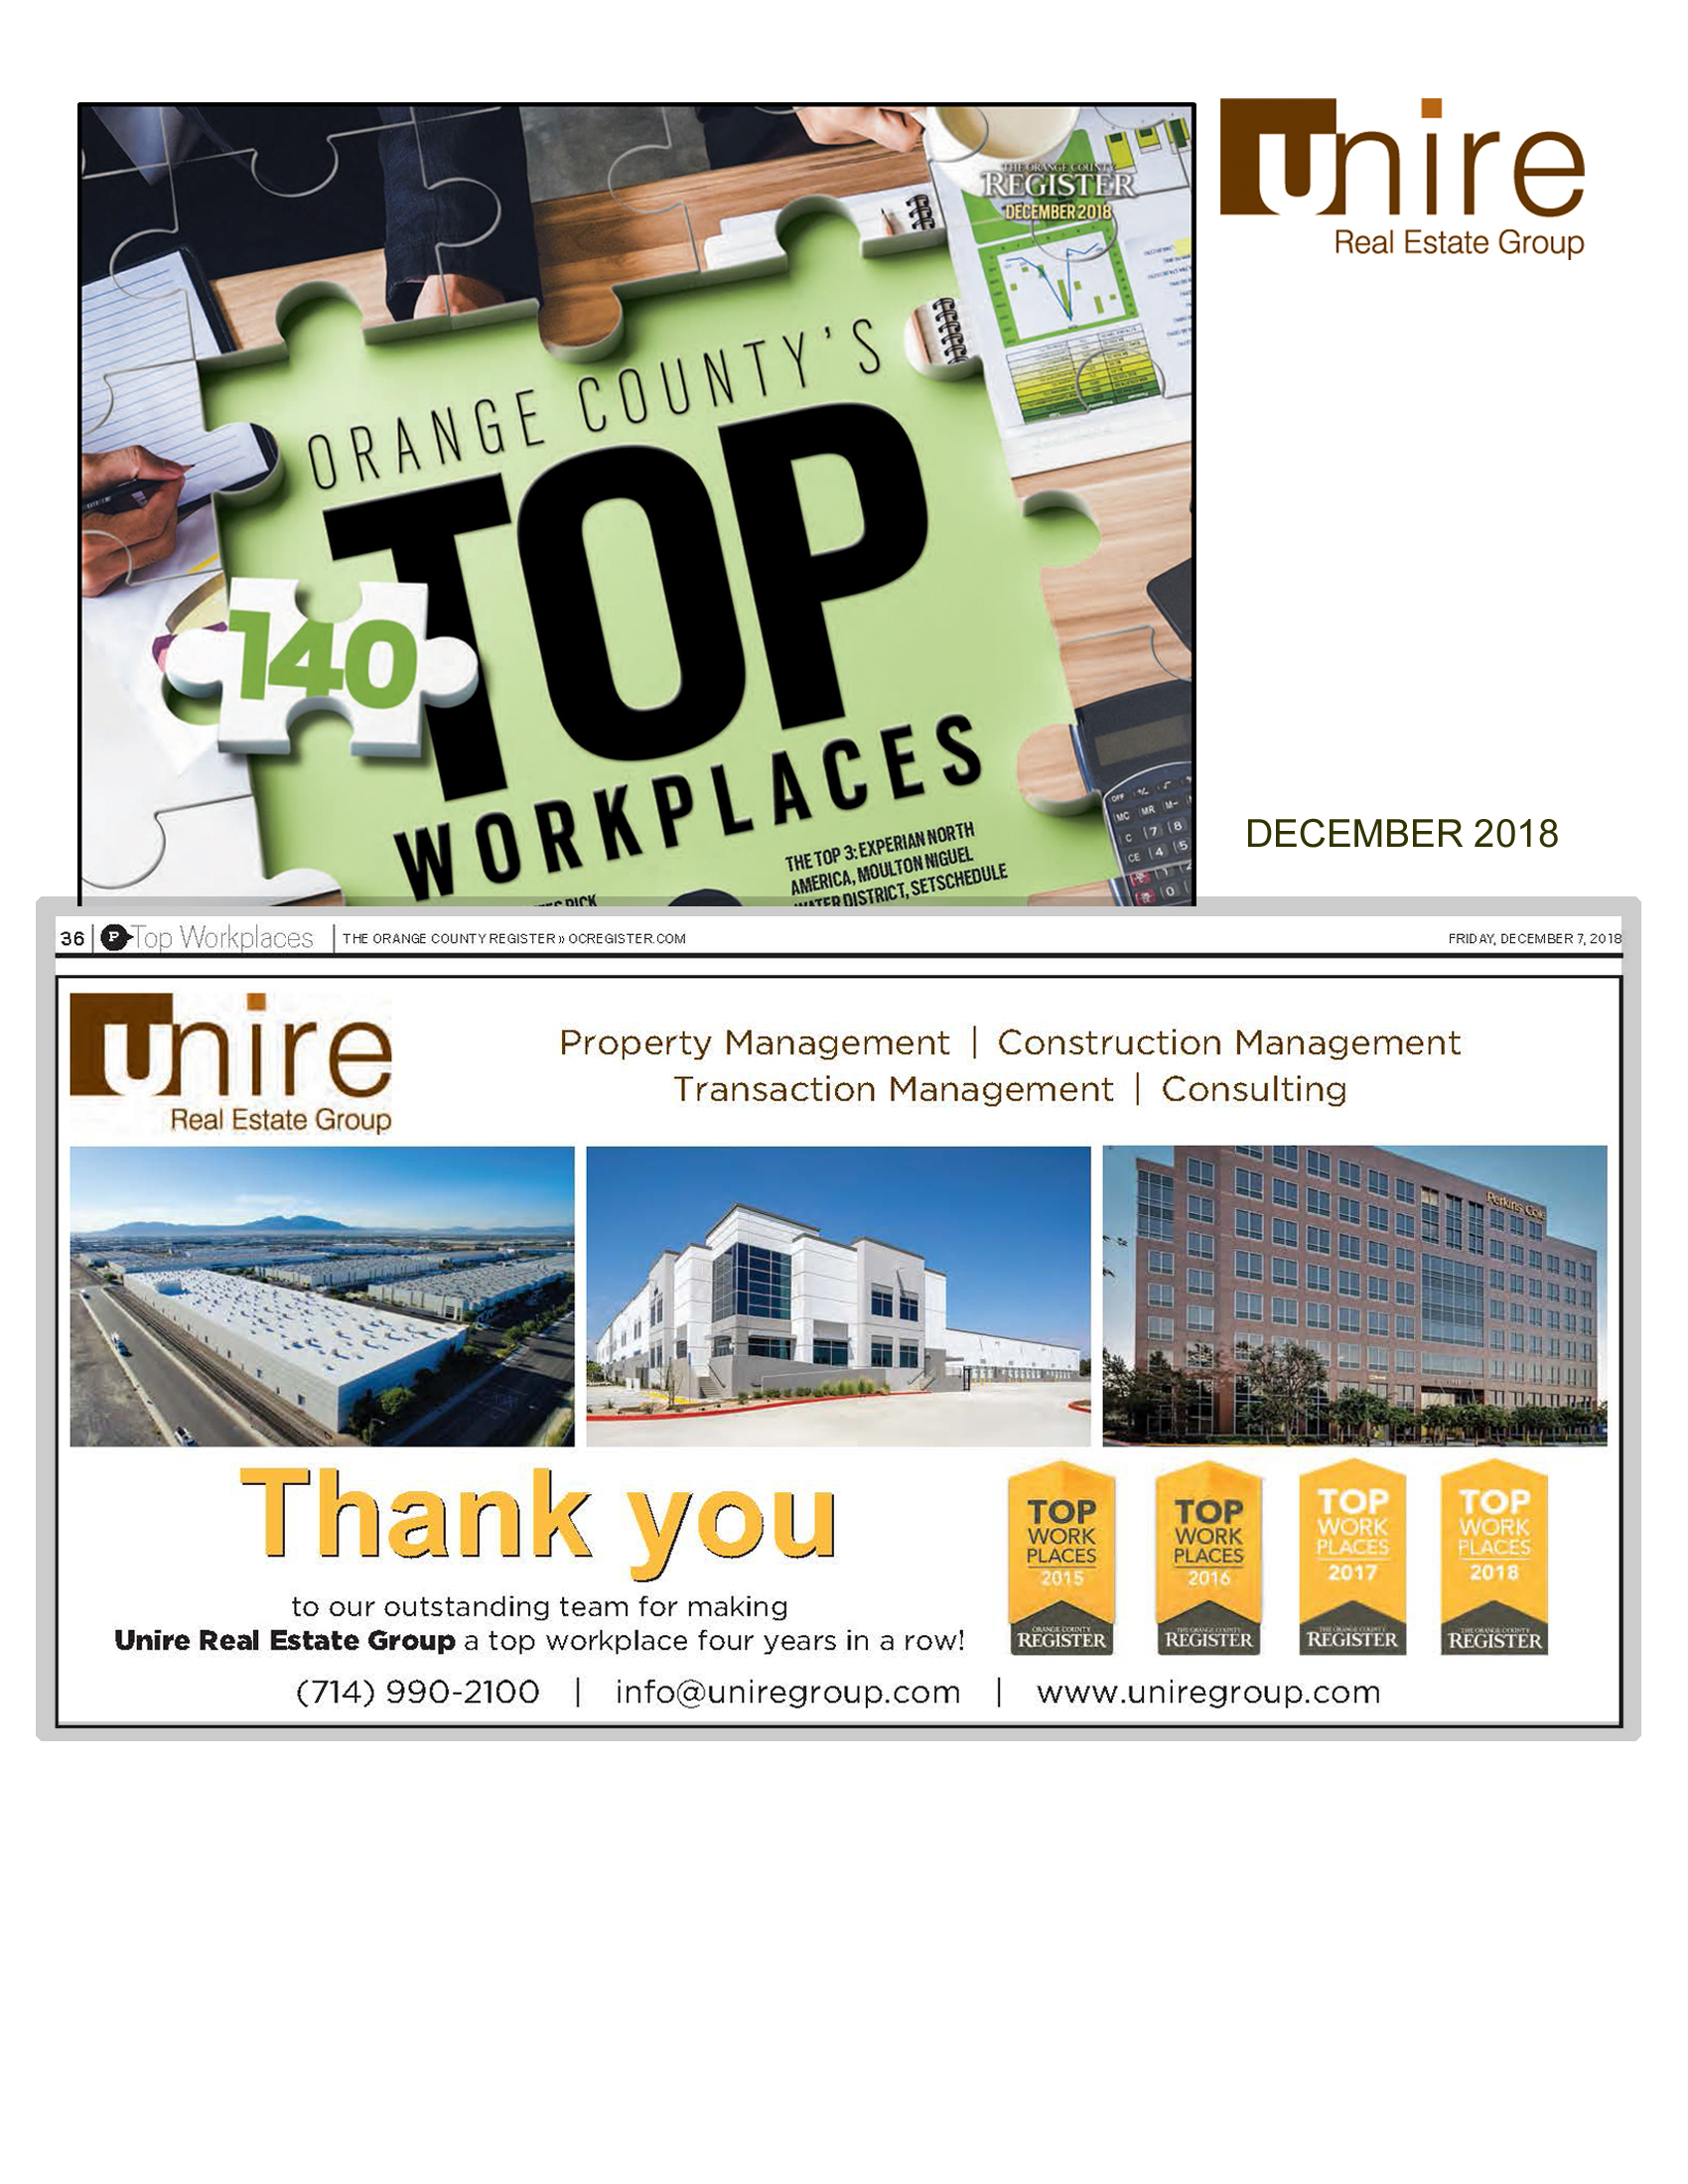 Unire Group Awarded Best Workplaces in Orange County for 4th Year in a row!